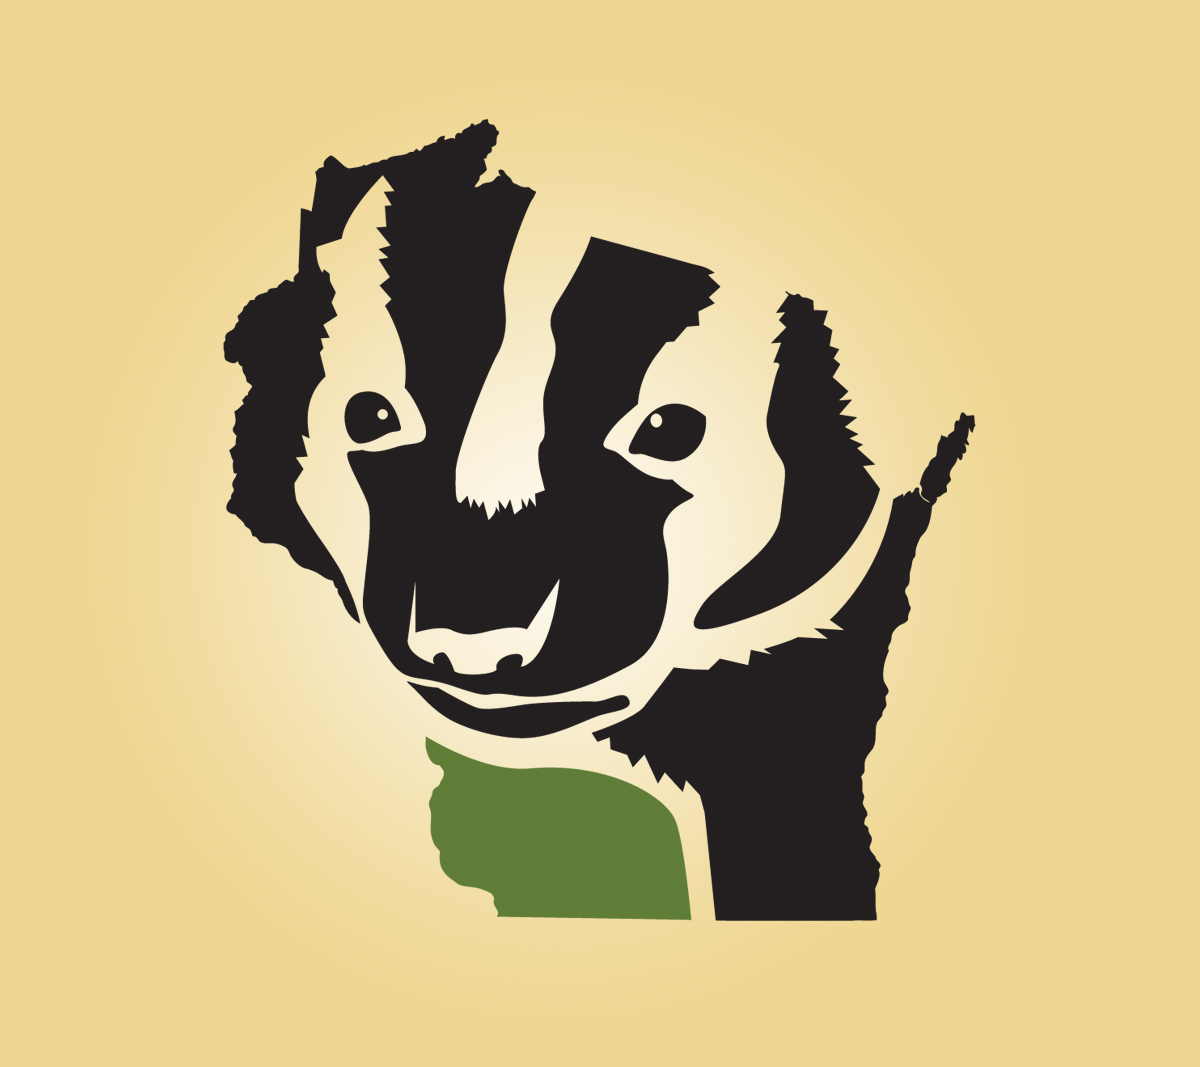 Southwest Badger Resource Conservation And Development Counc